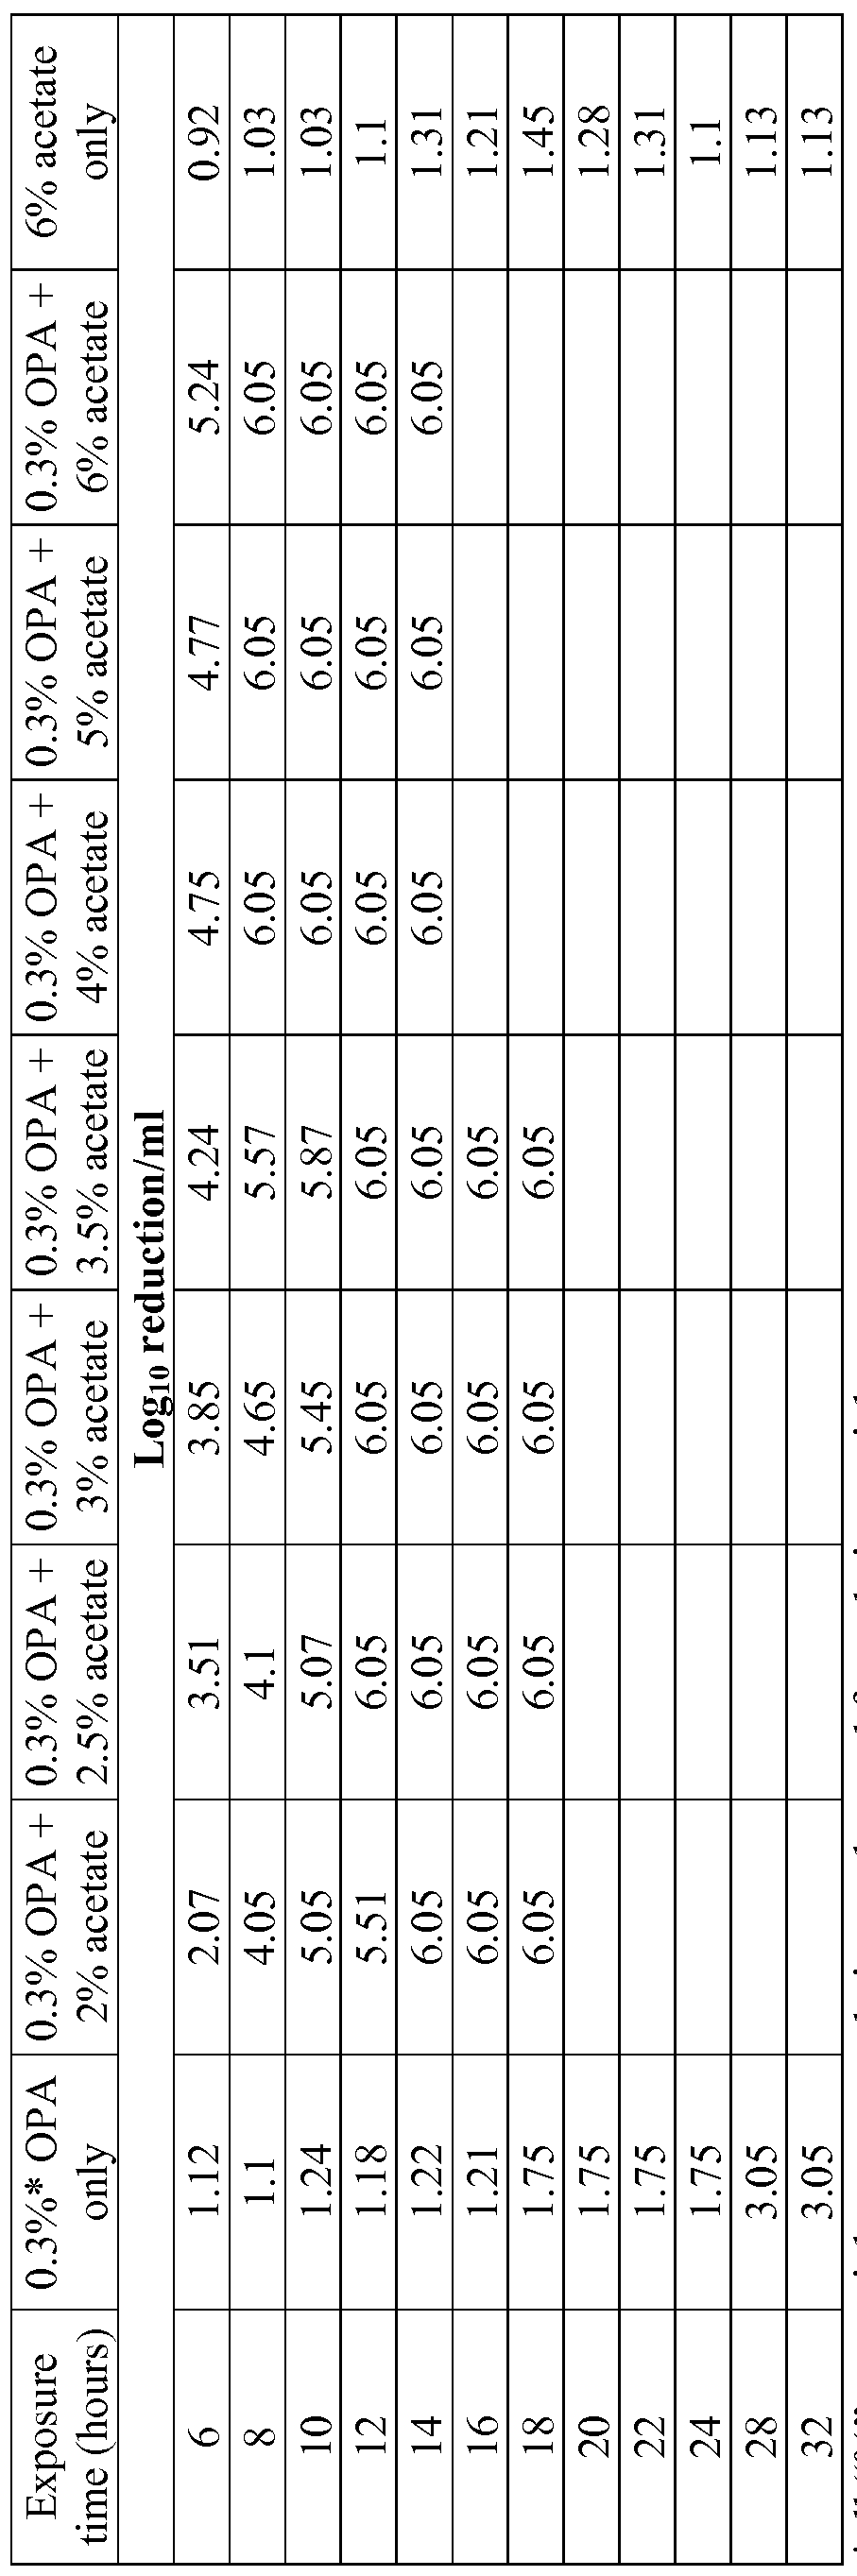 Wo2009058847a2 Enhanced Dialdehyde Disinfectant And Sterilization